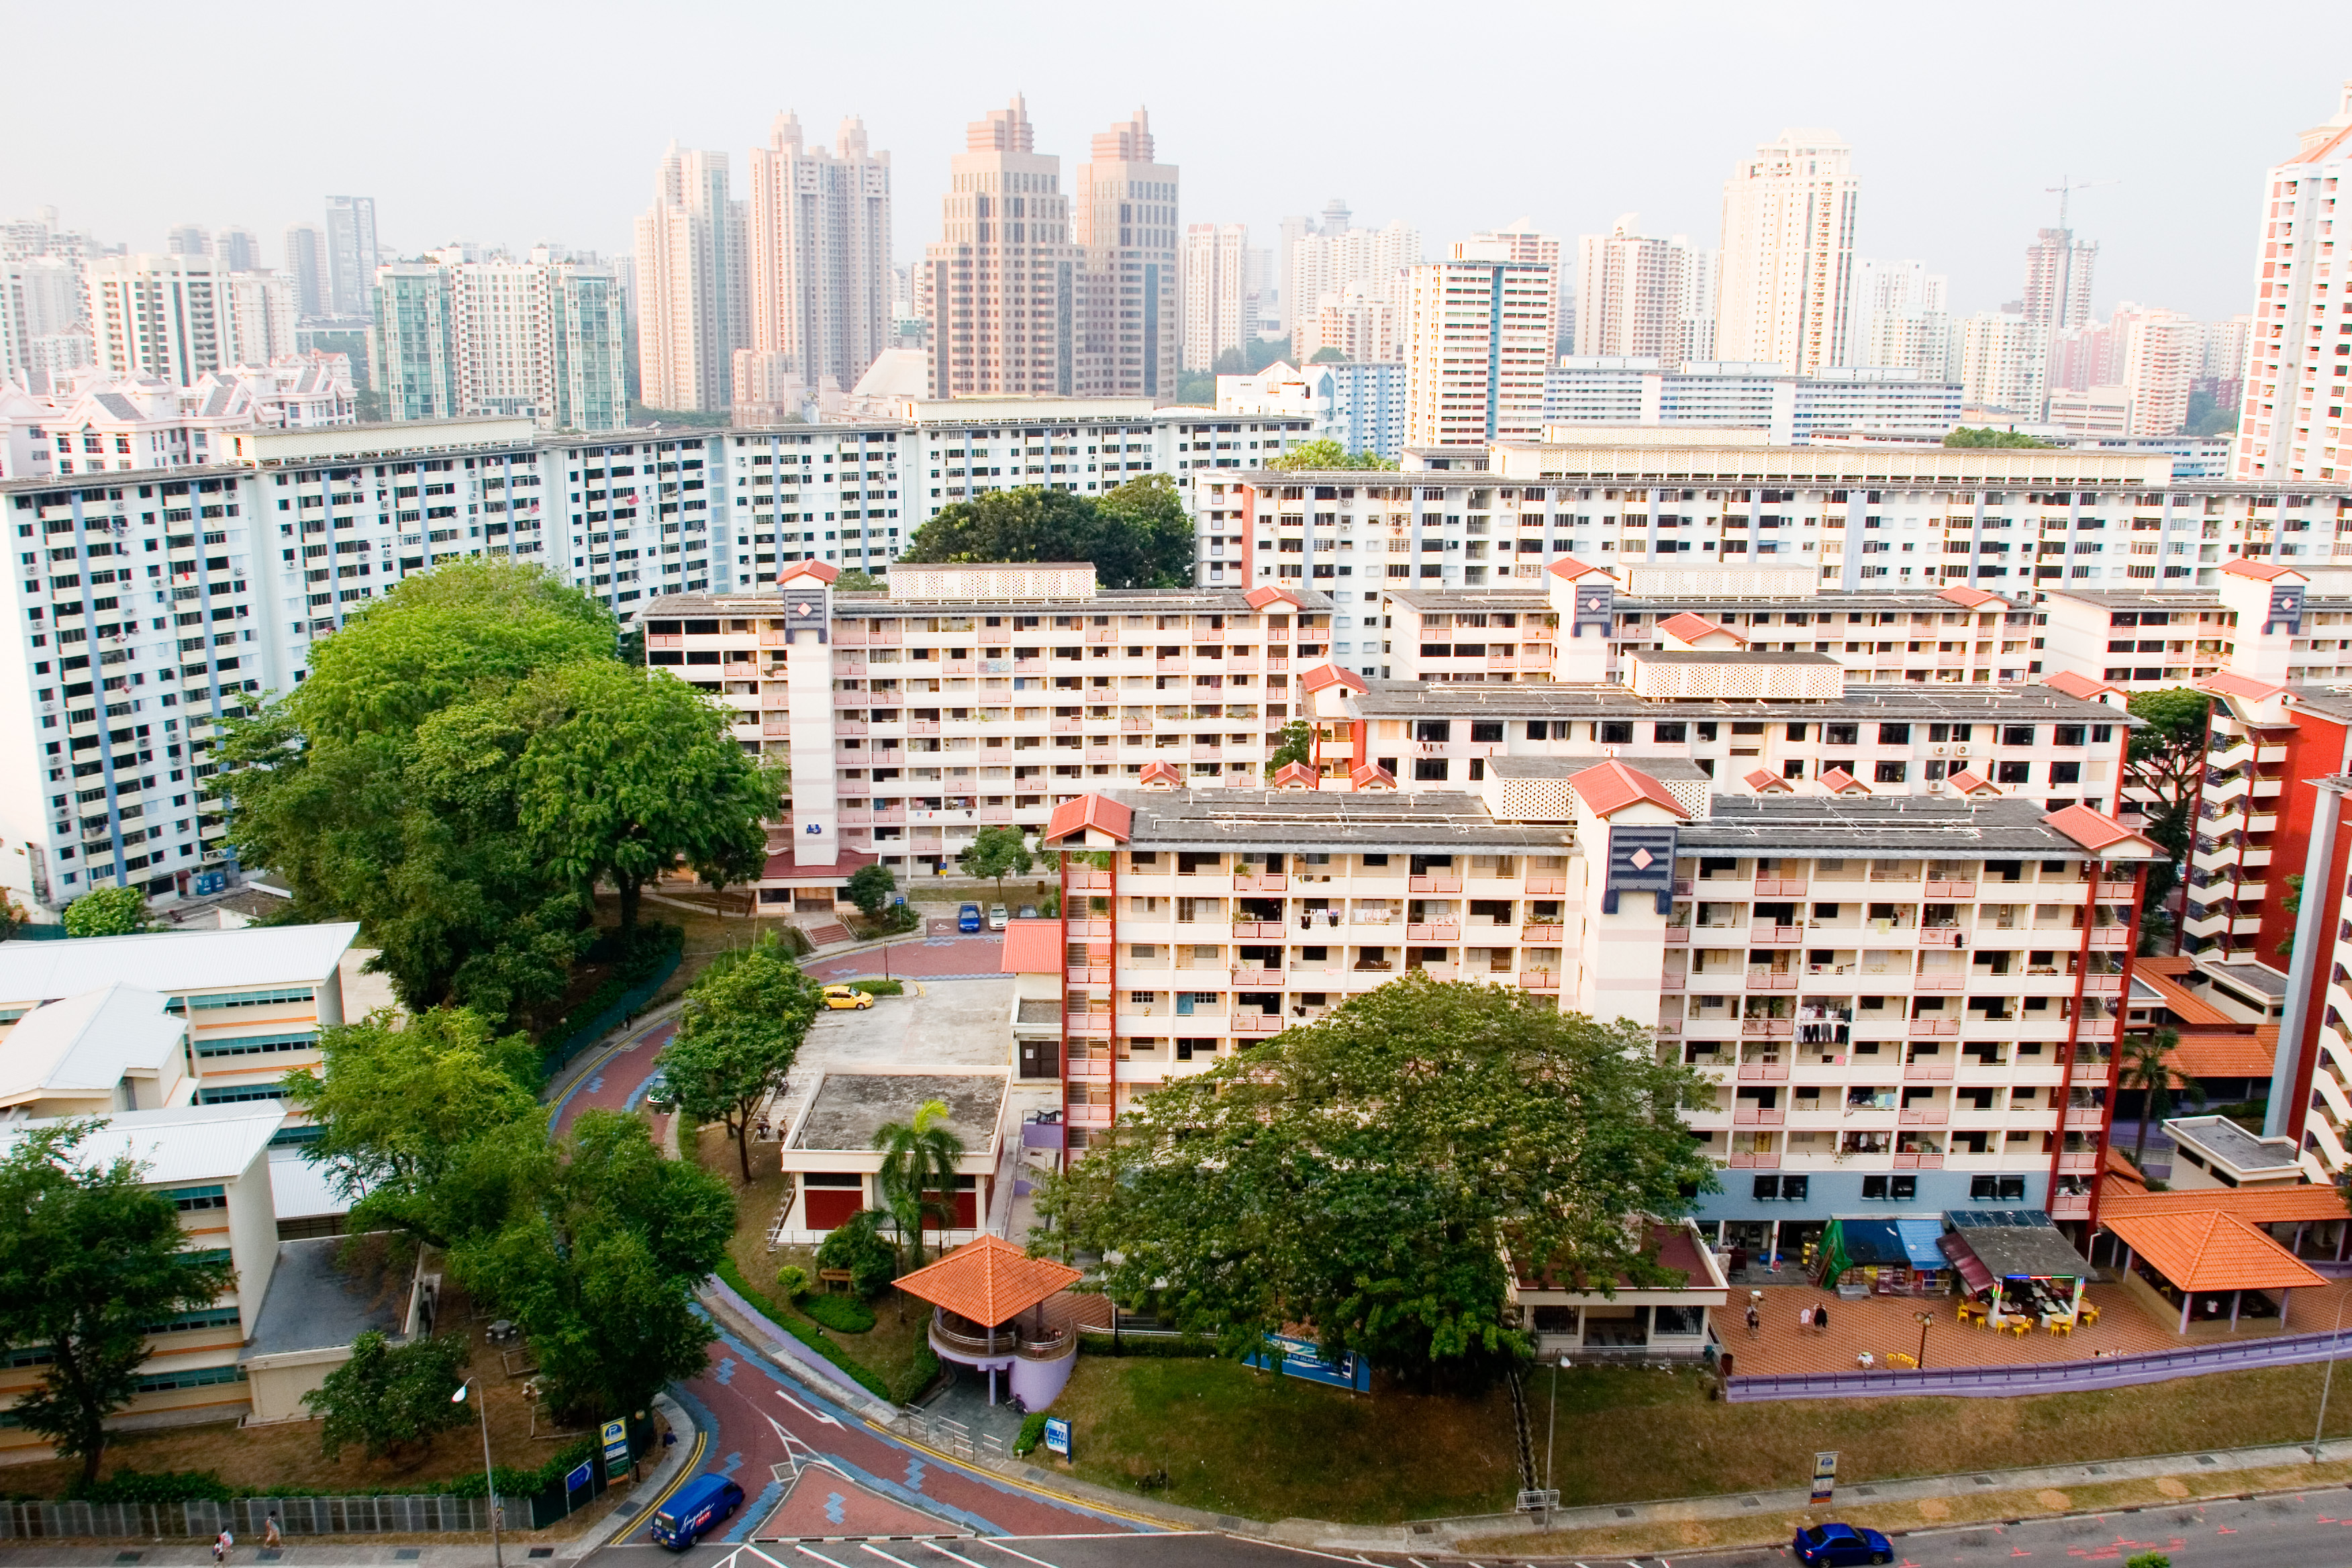 Blocks of HDB flats in Singapore.